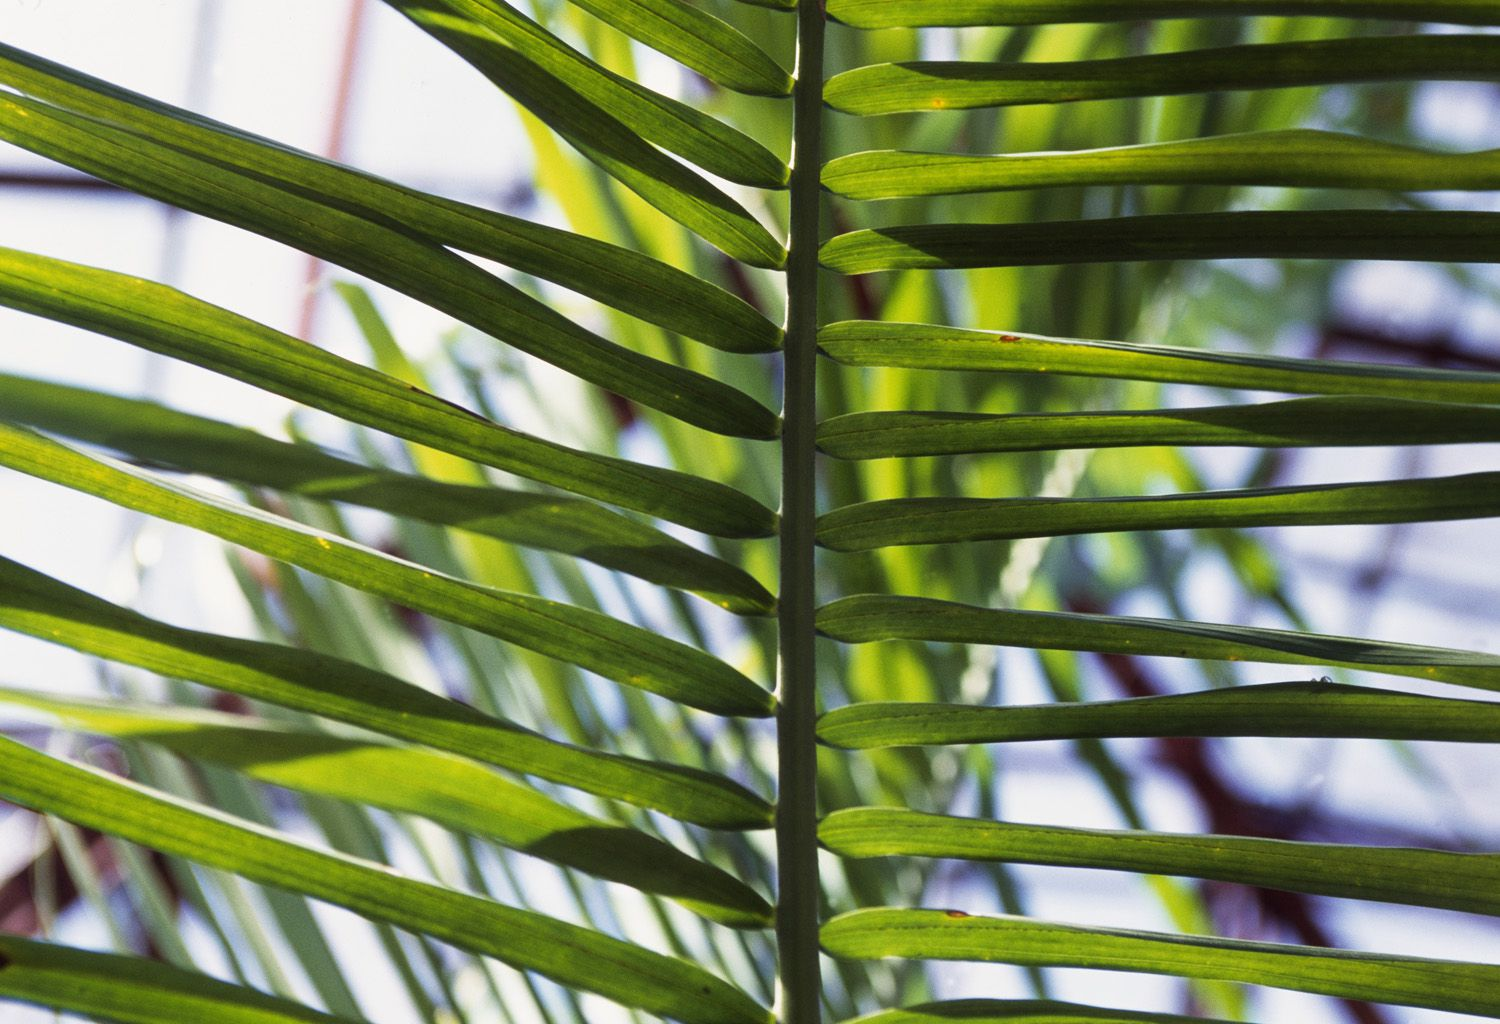 How to Grow and Care for Areca Palms Parlor Palm House Plant Leaf Discoloration on